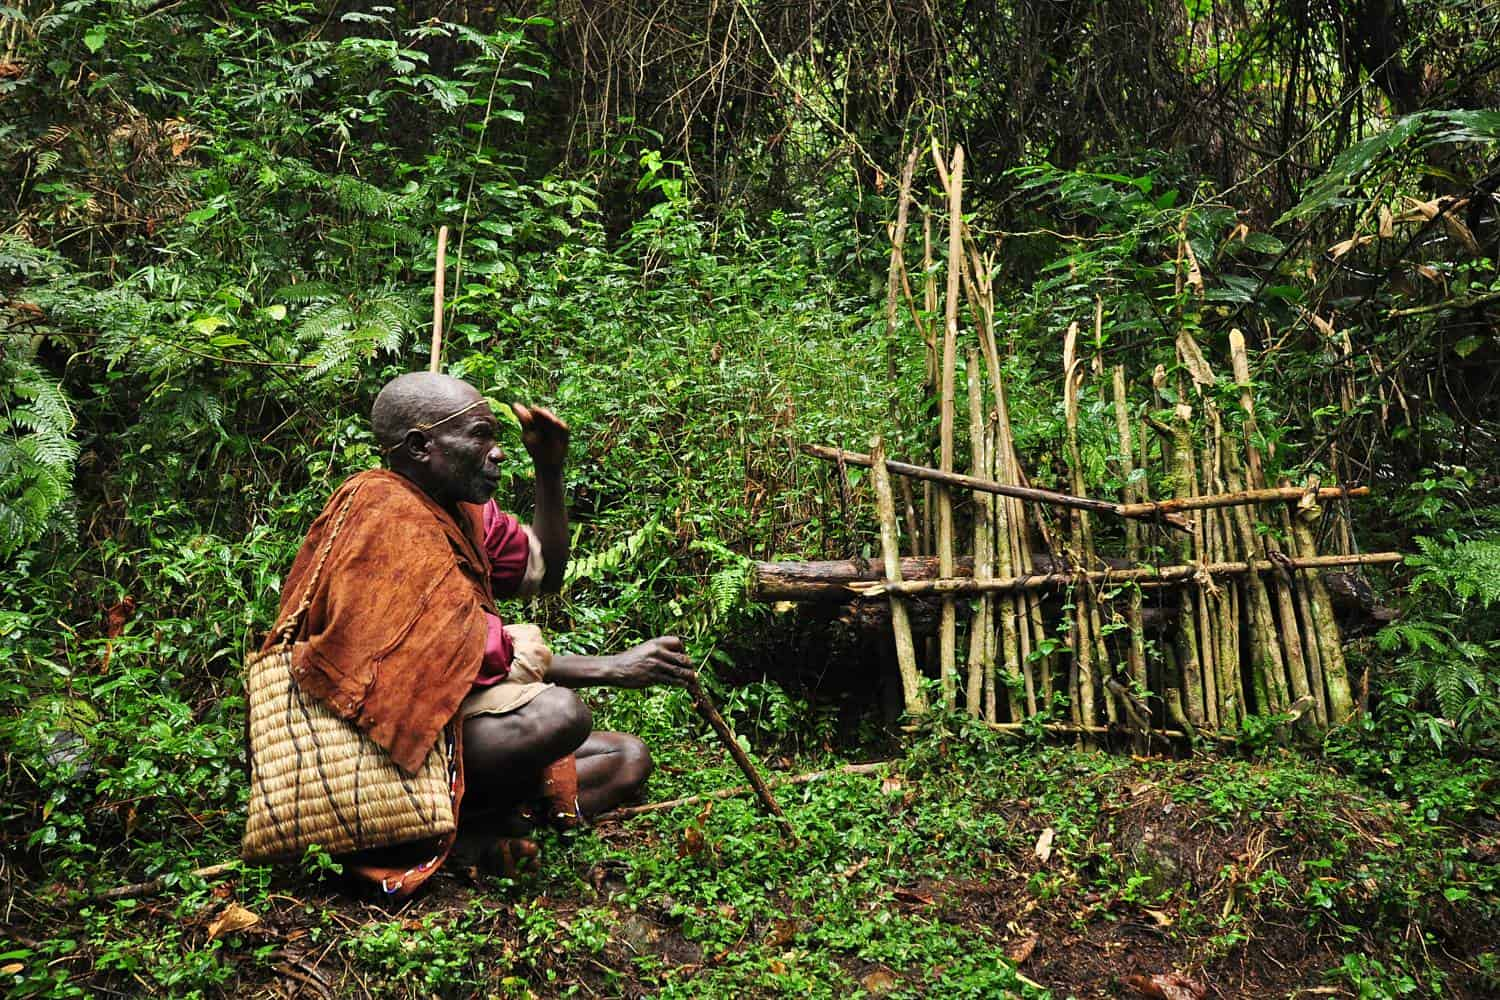 Cultural Interactions & Tour Visits To Tribal Communities In Bwindi